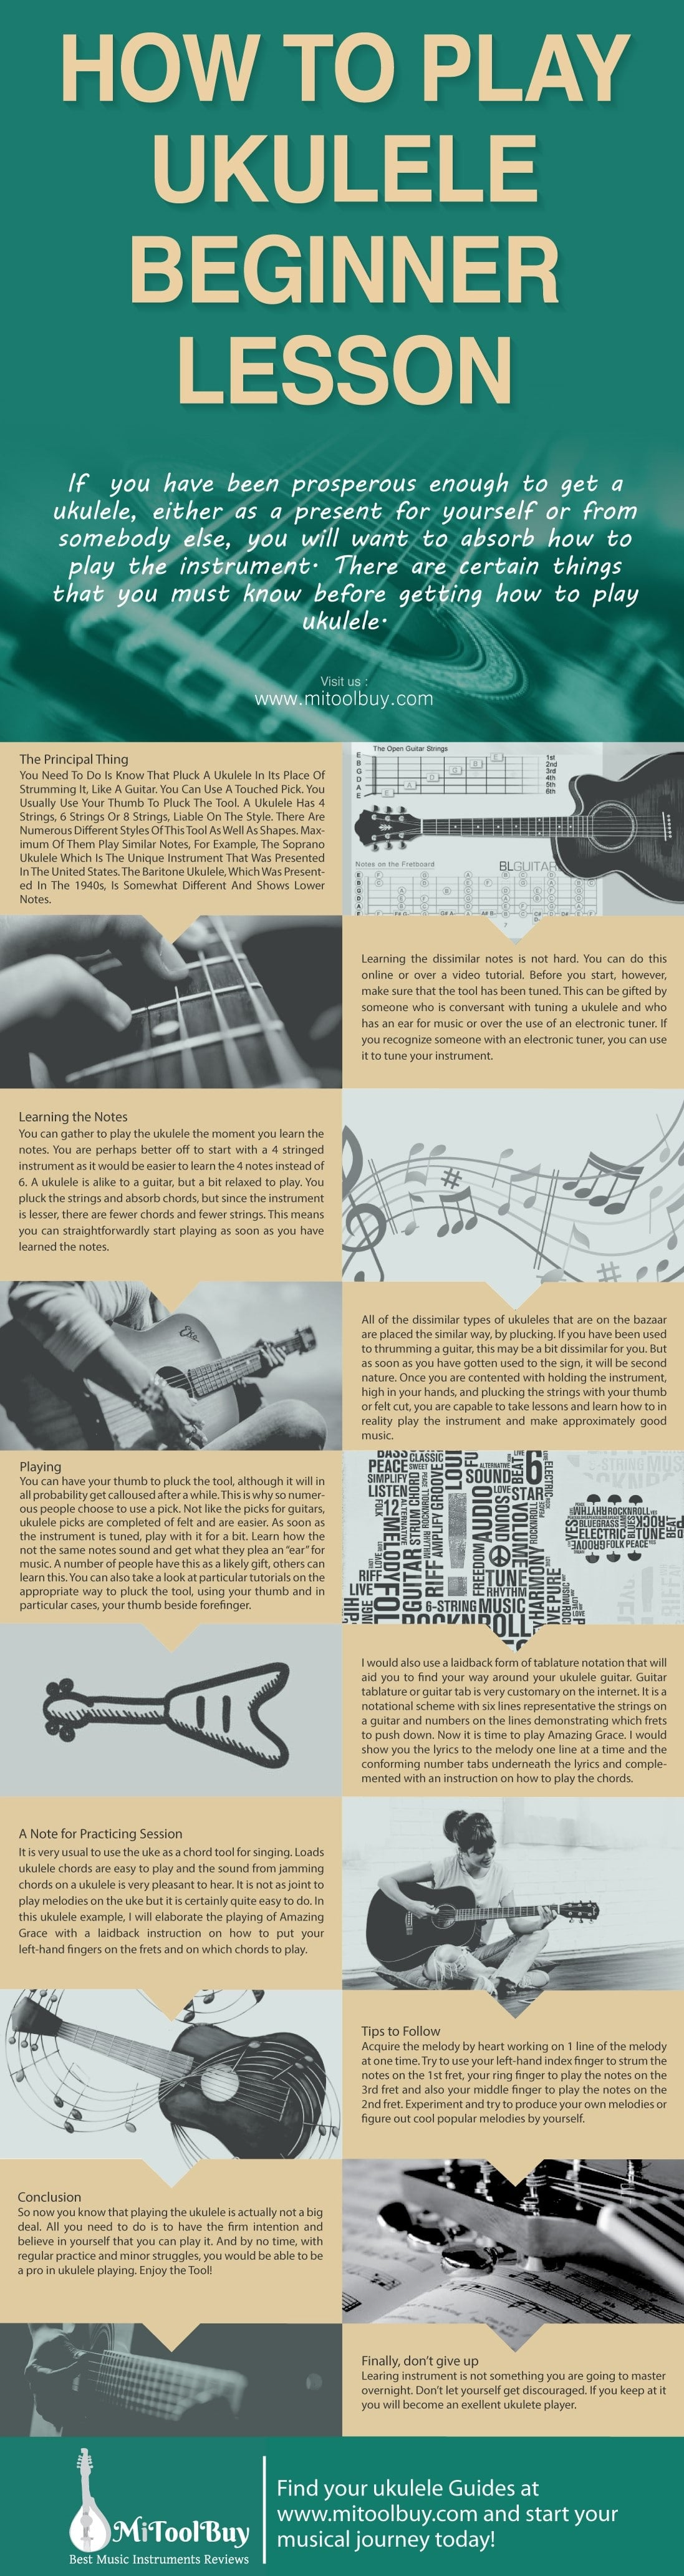 How To Play Ukulele-Infographic